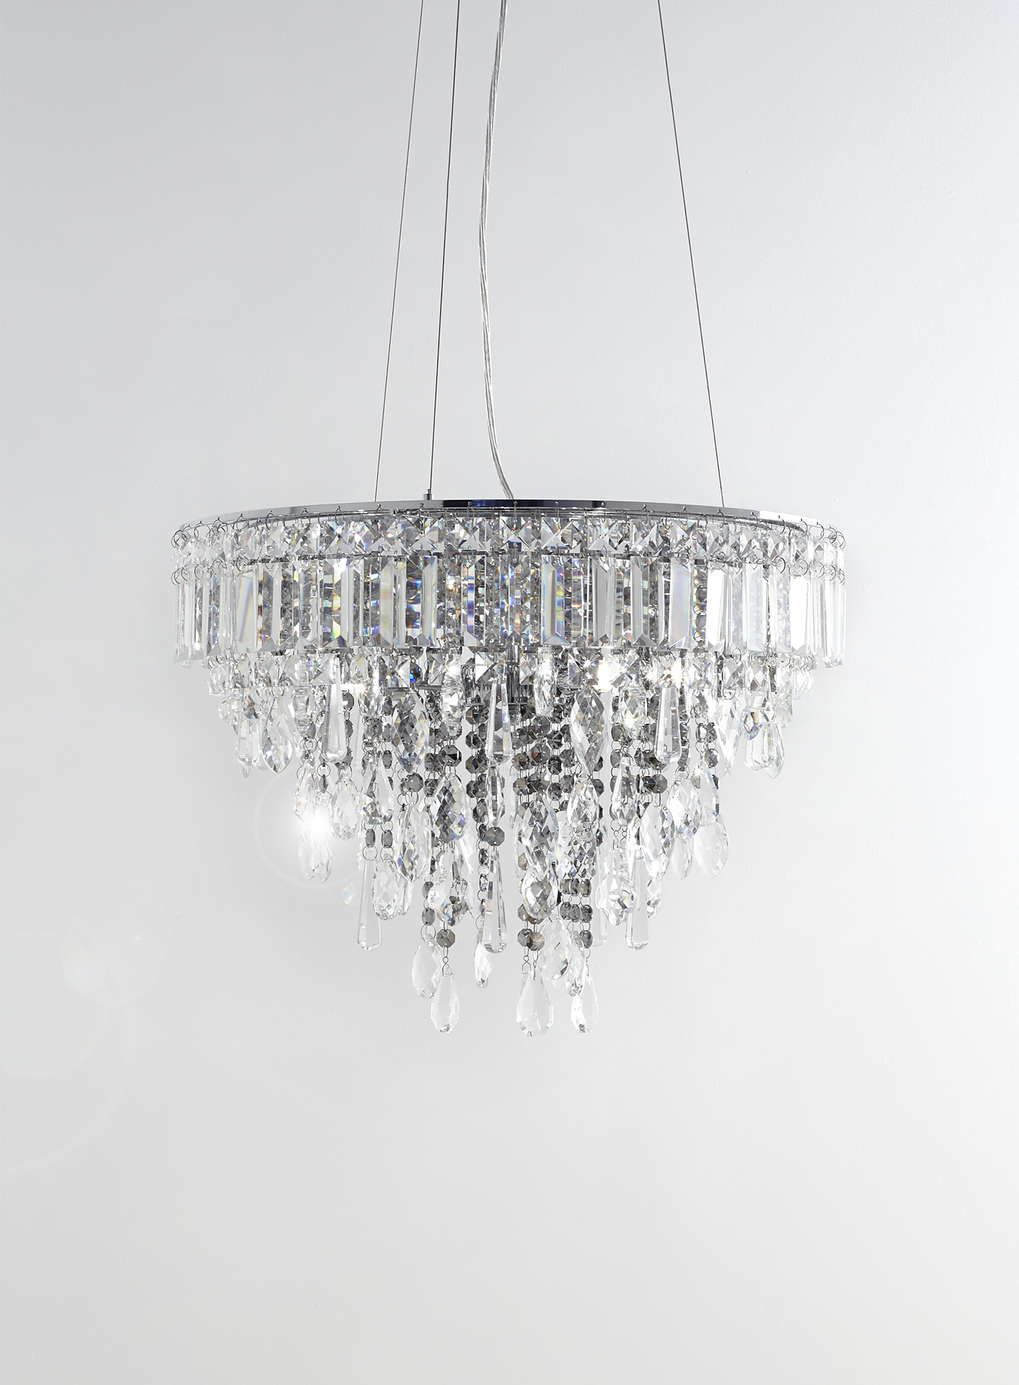 Smoke gabriella pendant light bhs living room hallway pinterest smoke gabriella pendant light bhs aloadofball Images